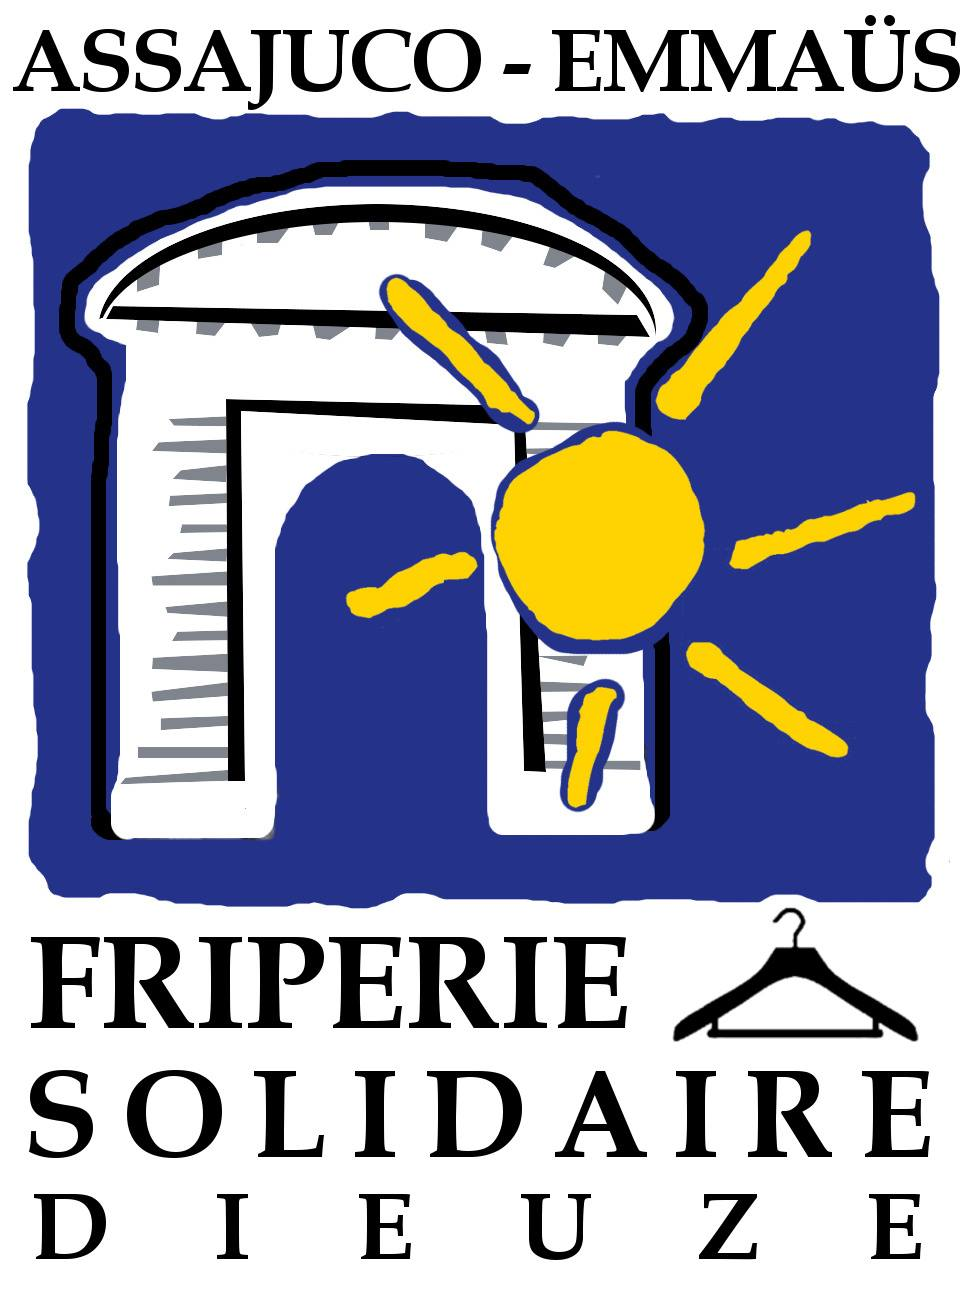 Friperie solidaire